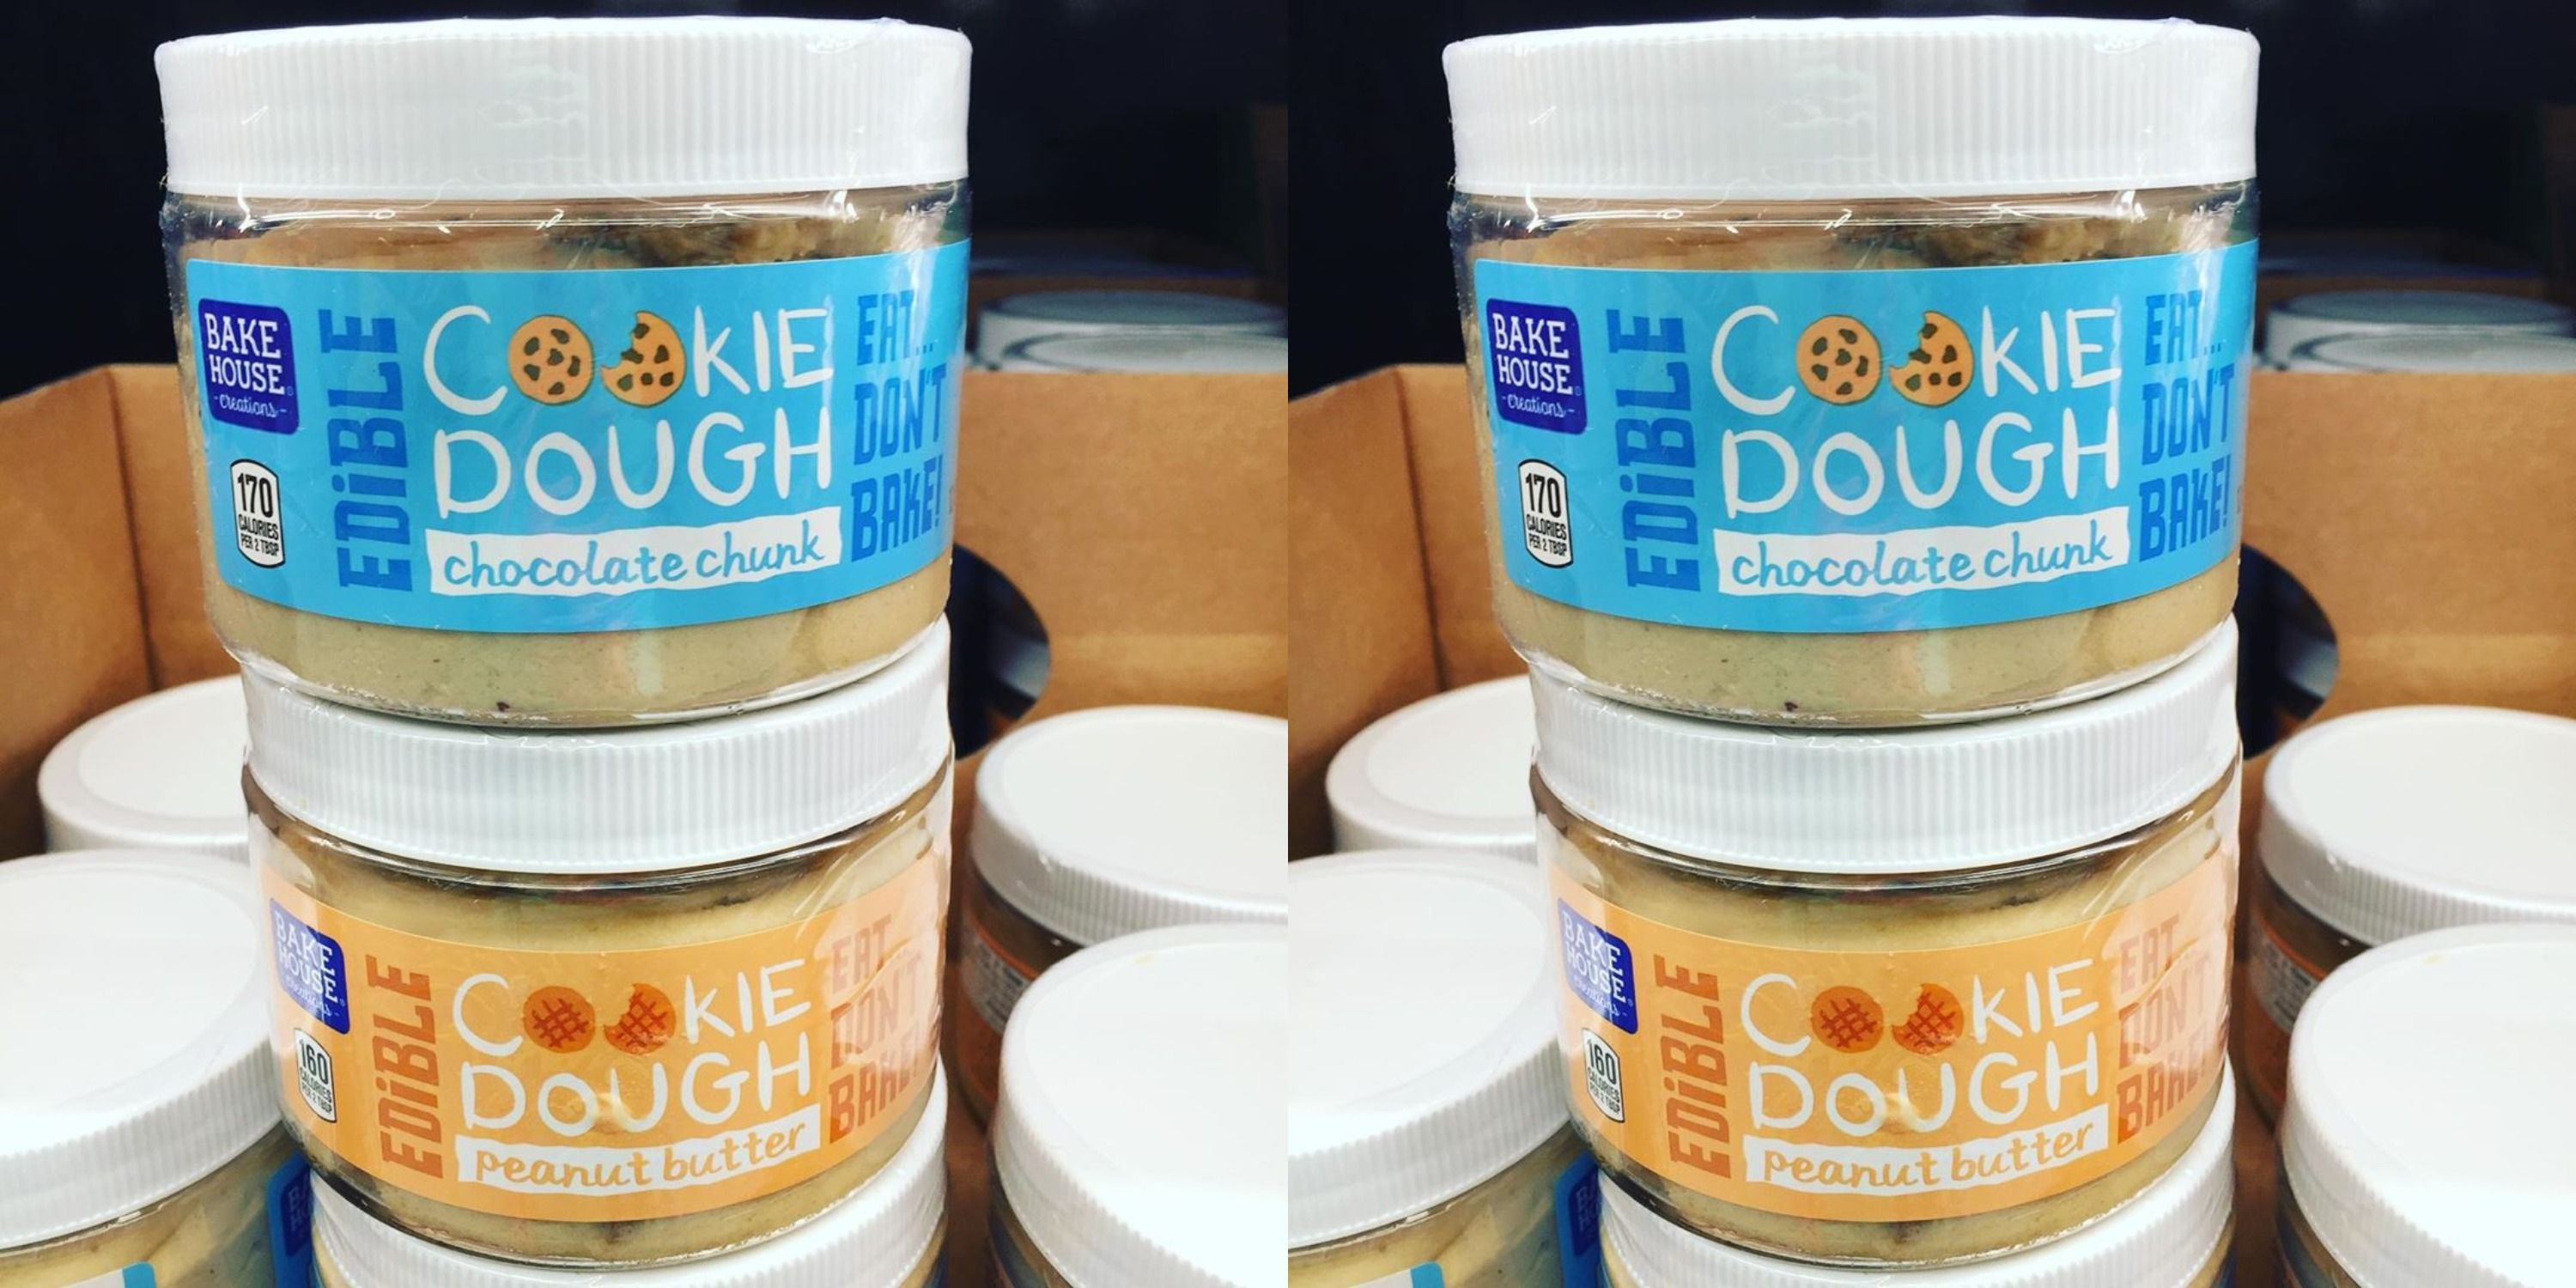 Aldi Has Jars Of Edible Cookie Dough Safe To Eat Raw